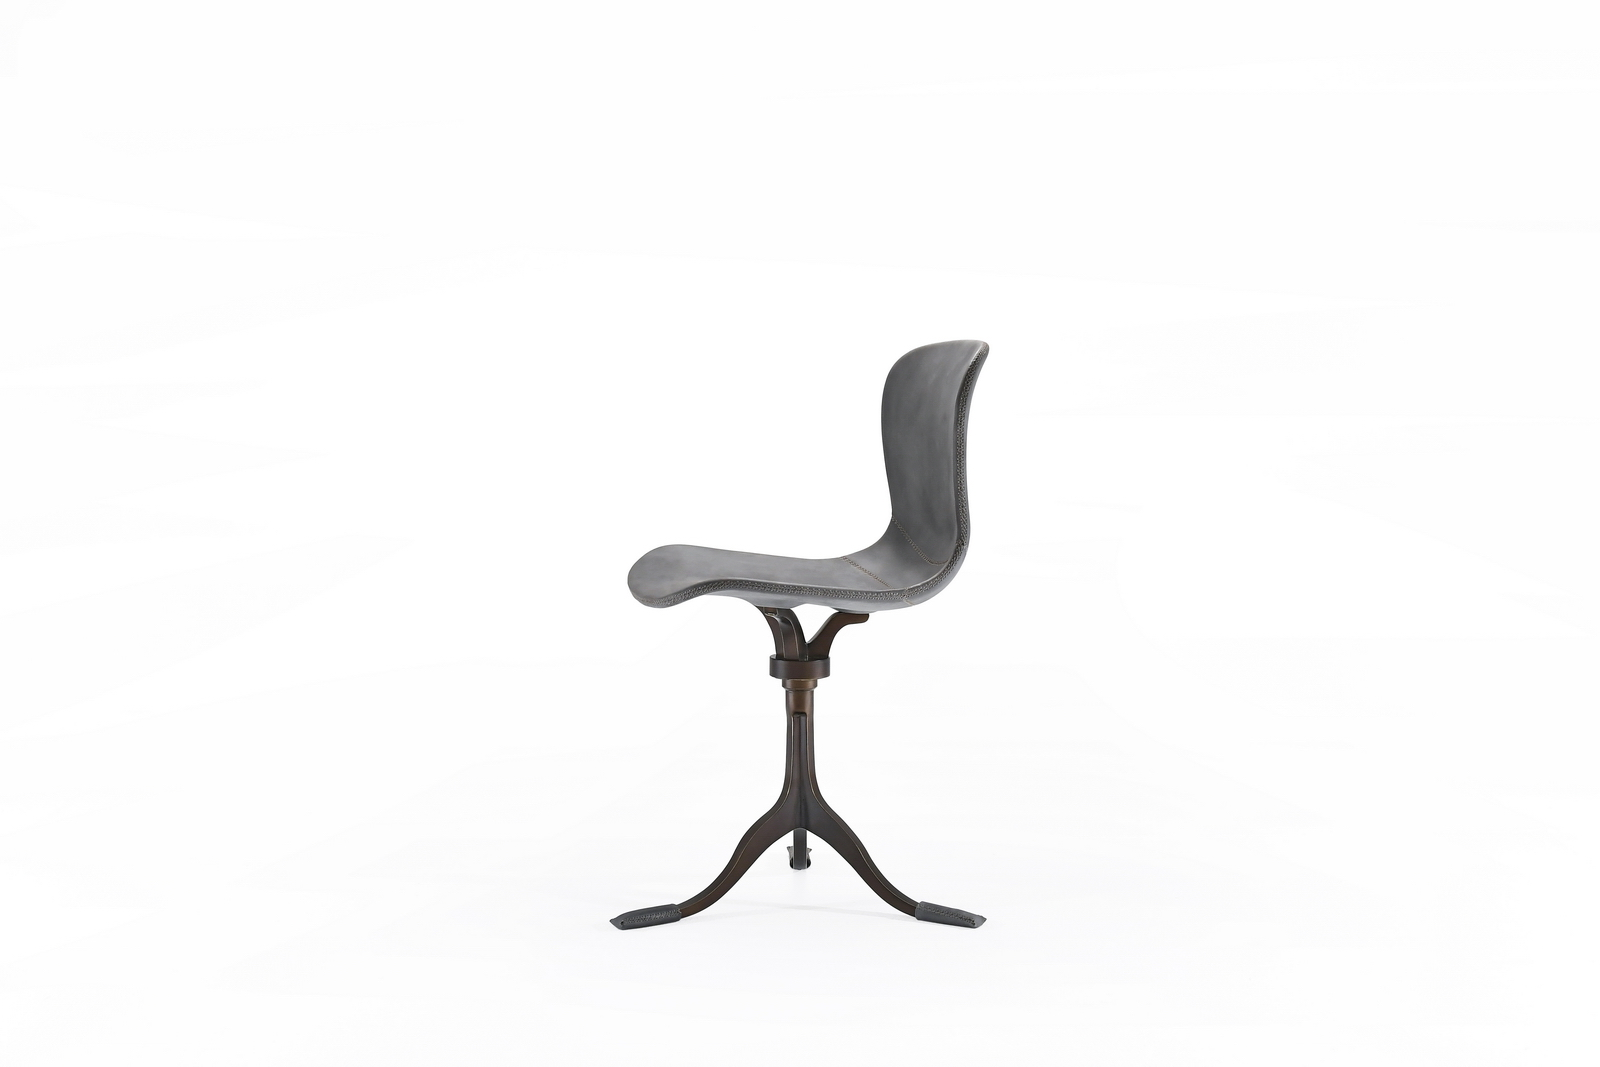 PTendercool-Chair-PT43-BS3-GY-210615-02